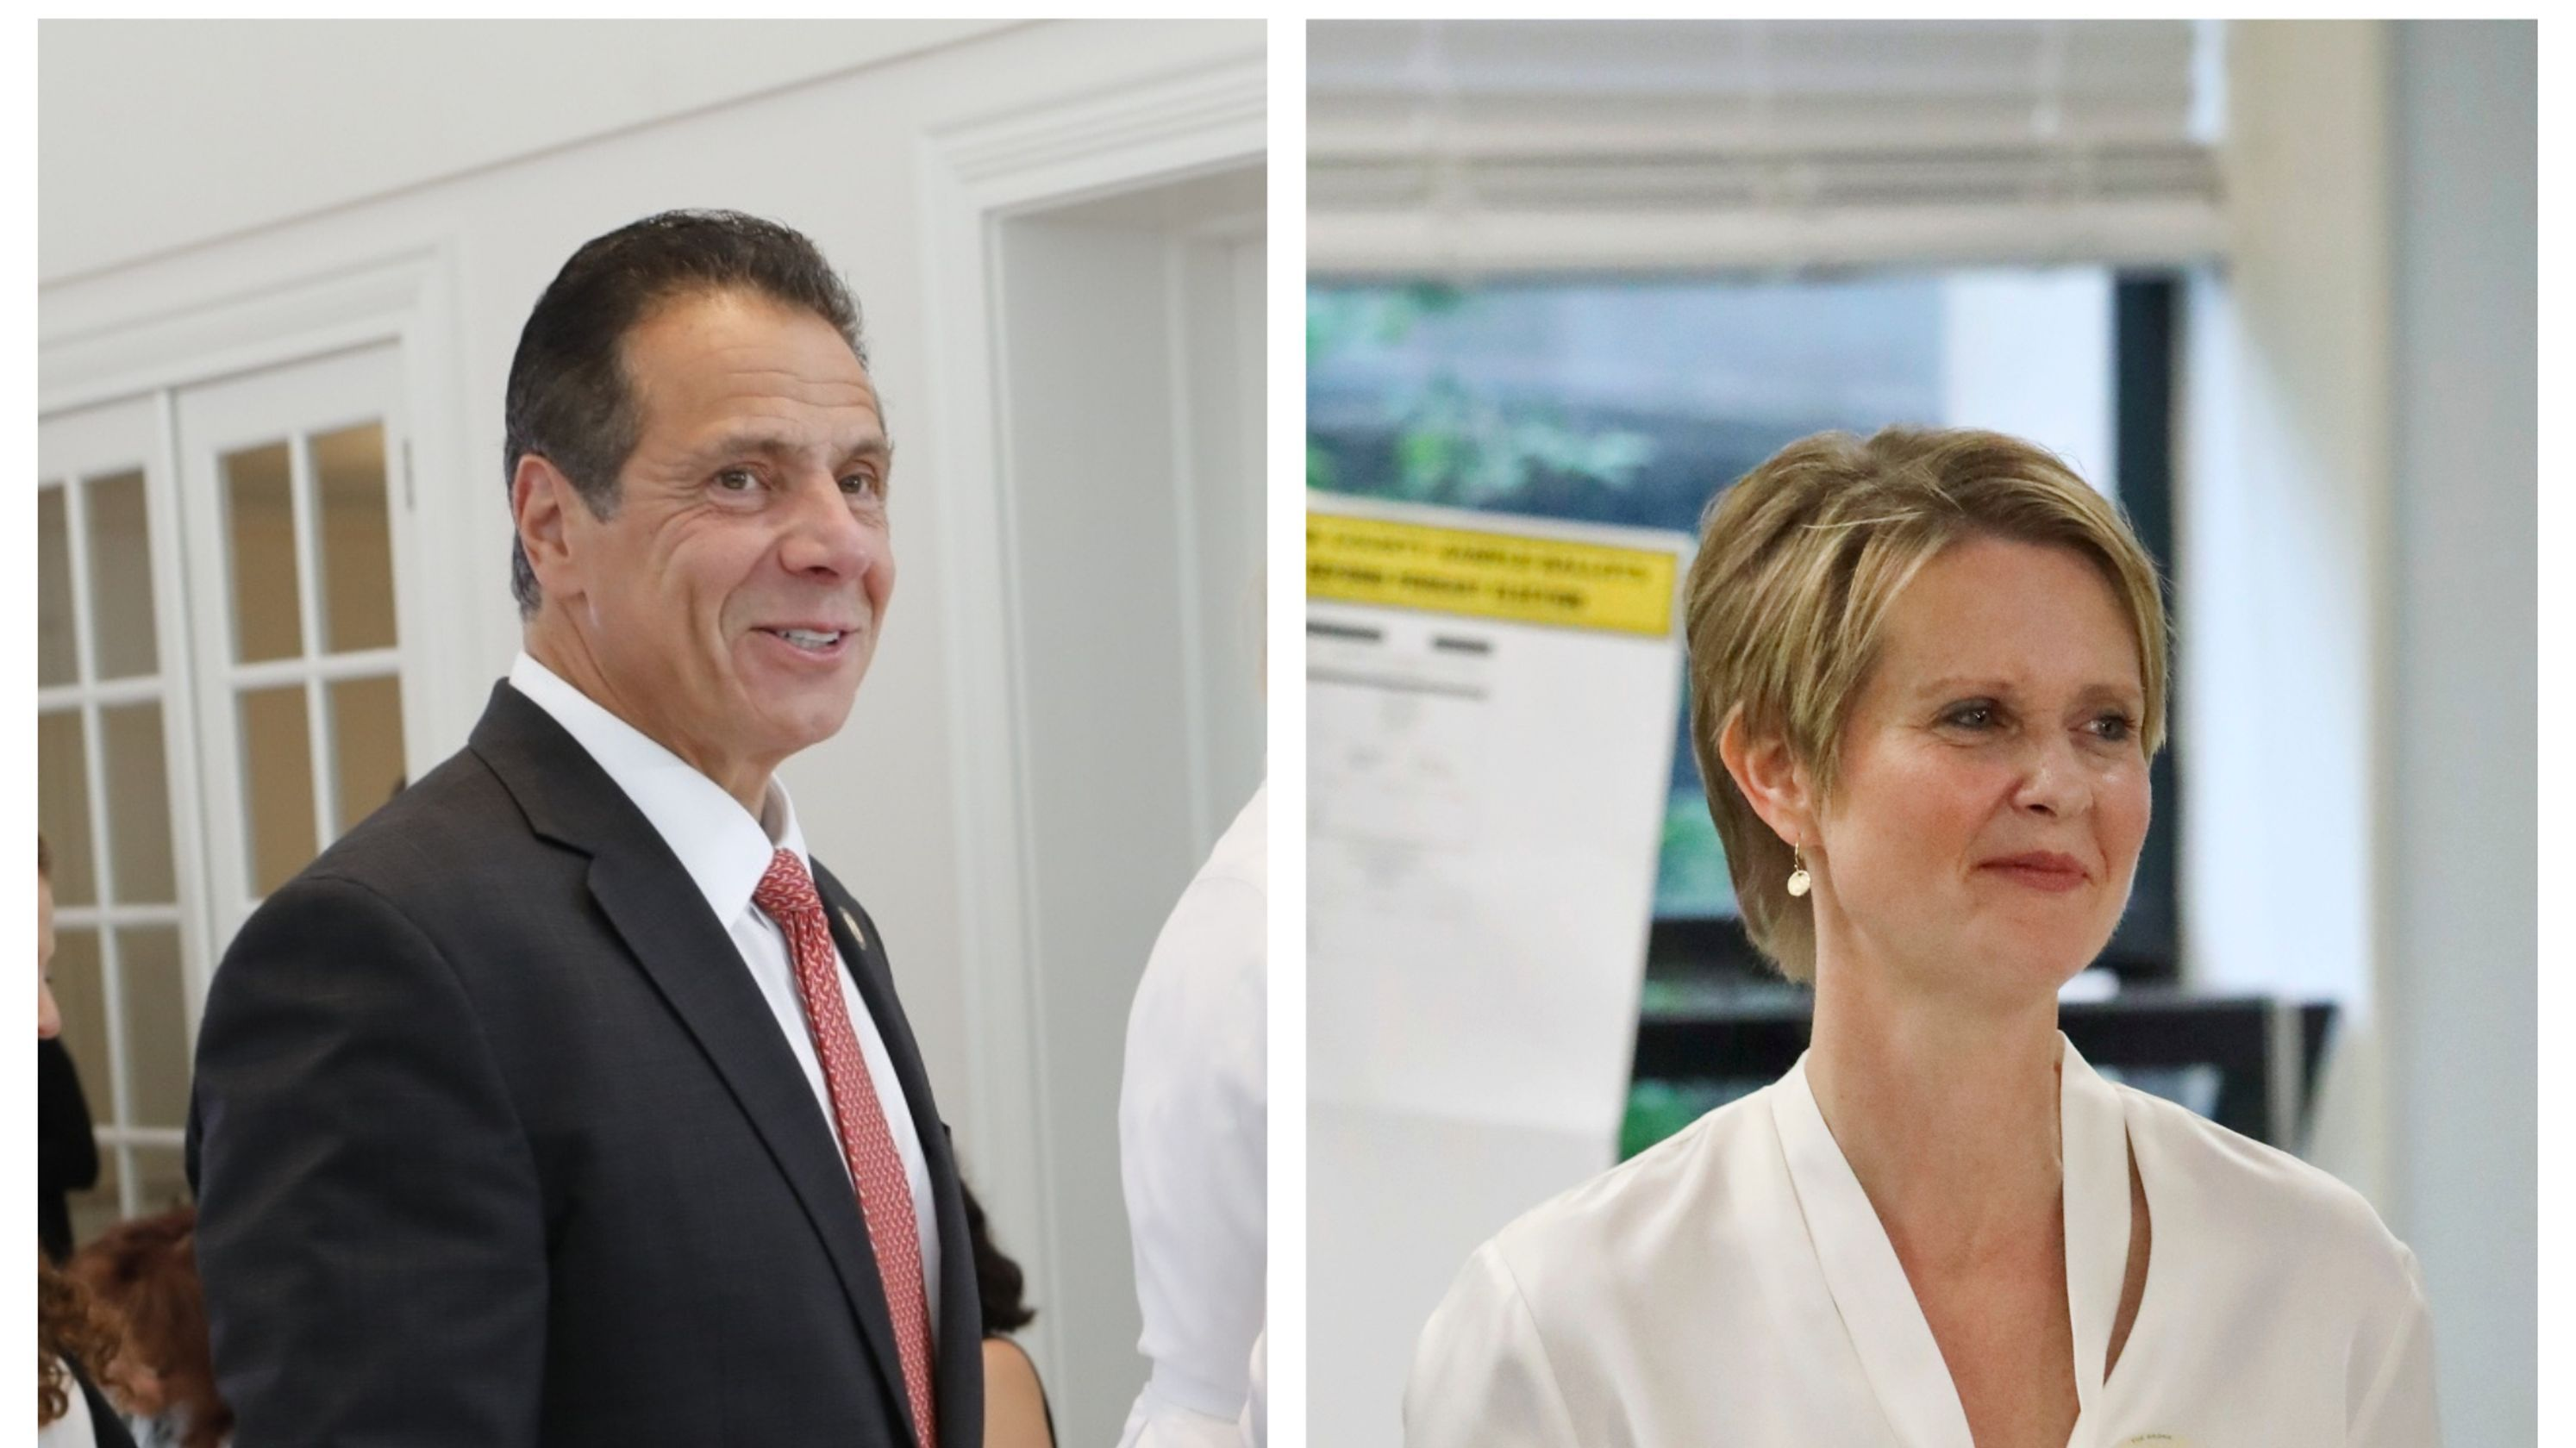 New York Primary Andrew Cuomo Cruises To Easy Win Over Cynthia Nixon Primary Results Andrew Cuomo Viral